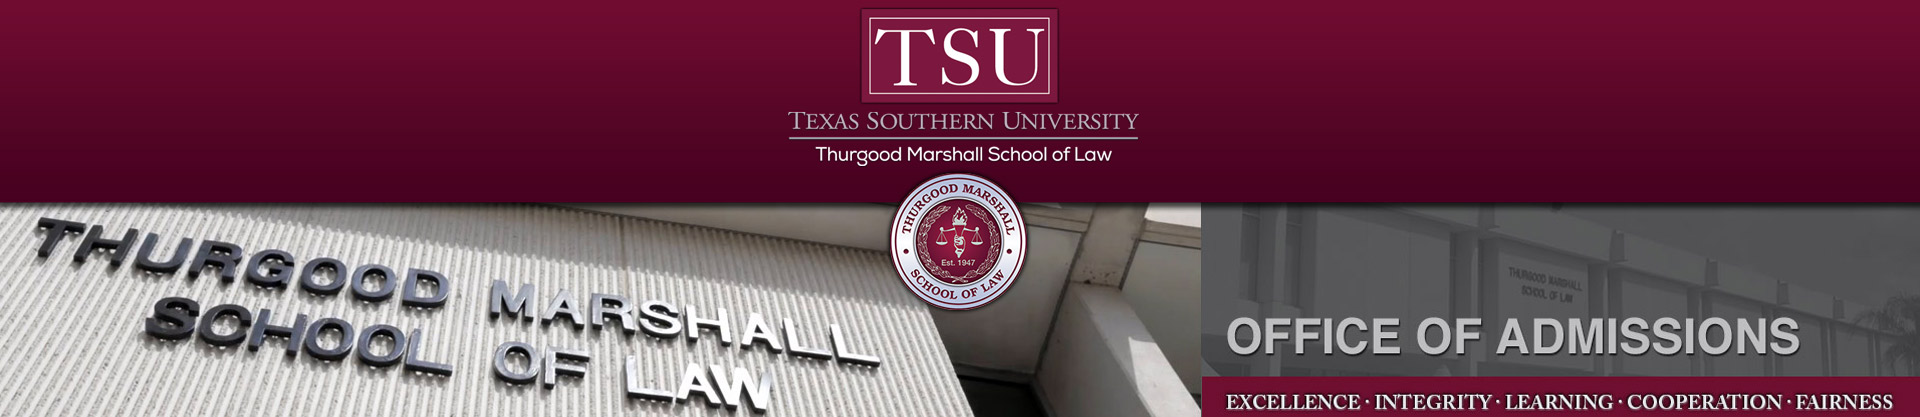 office of admissions thurgood marshall school of law dannnye k holley dean and professor of law